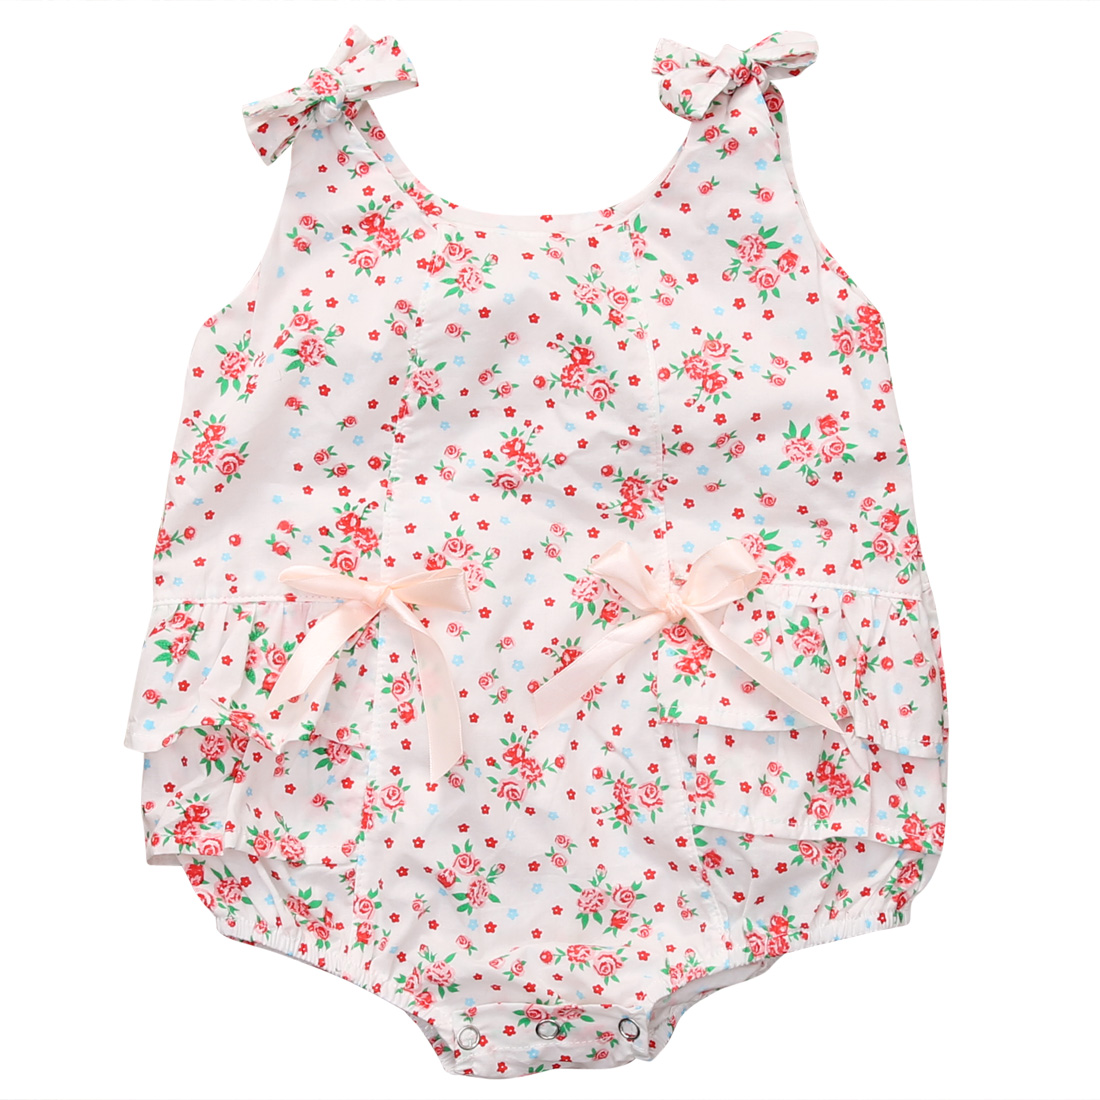 Getting them dressed quickly to catch a sunny day is even easier with this lovely 2 pack of rompers. The sleeveless design will help to keep them cool, and w.